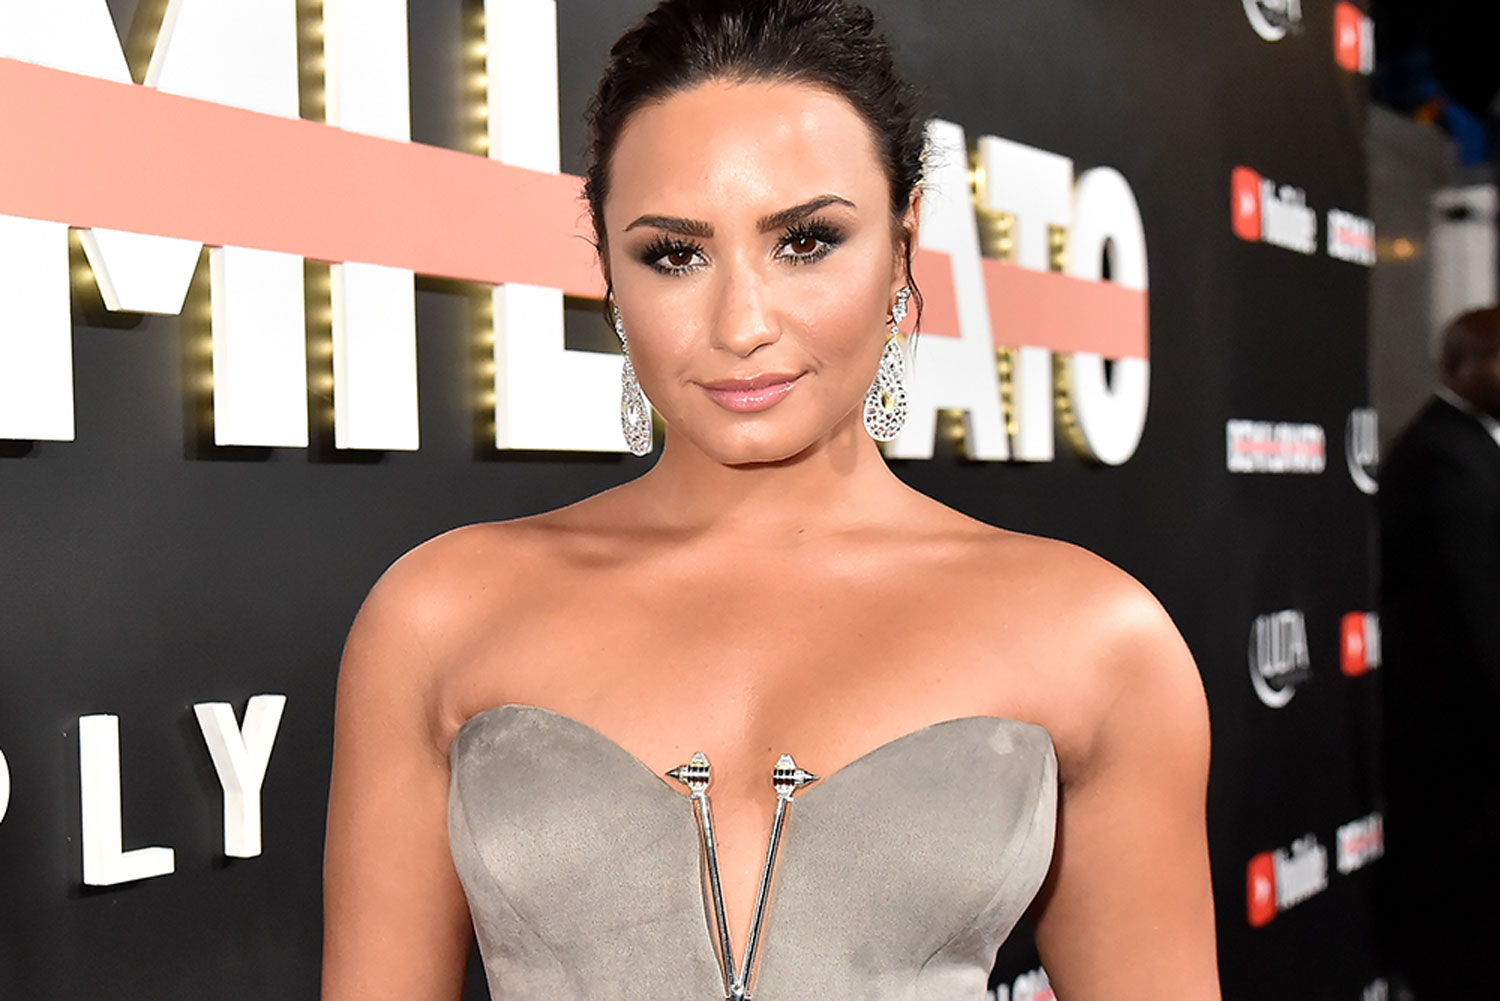 Demi Lovato Just Revealed Intimate Details About Her Recent Eating Disorder Relapse